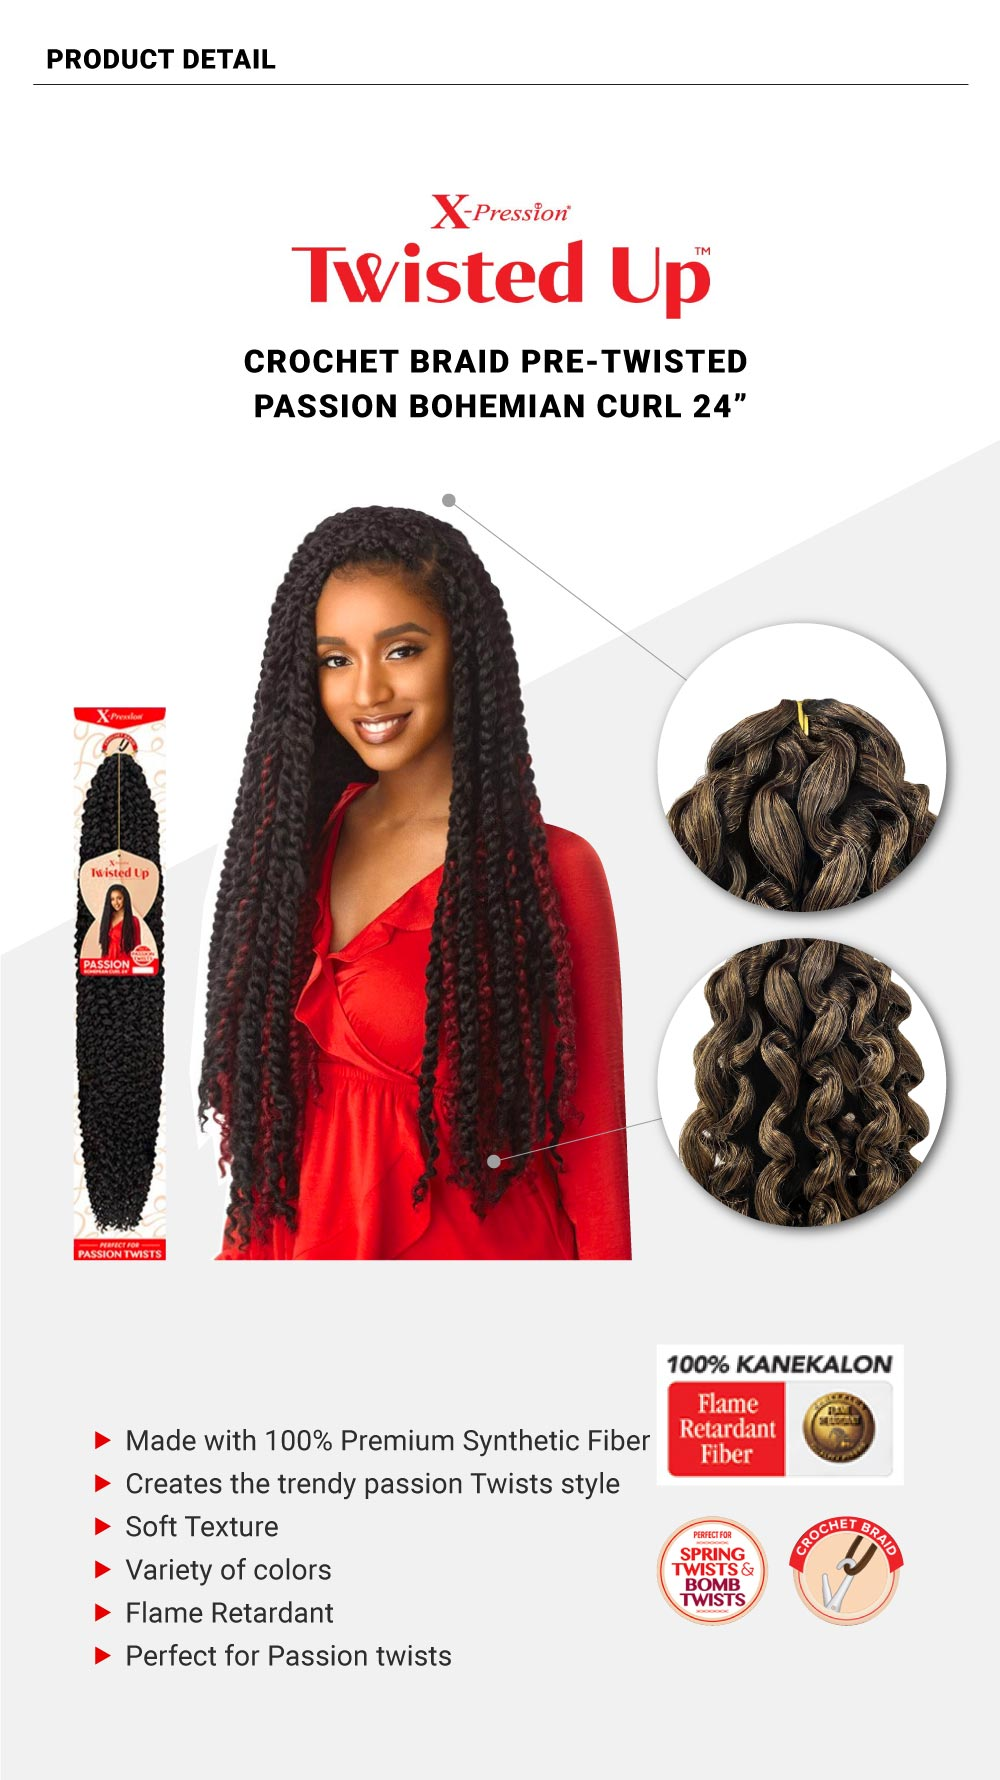 X-PRESSION-TWISTED-UP-PASSION-BOHEMIAN-CURL-24INCH